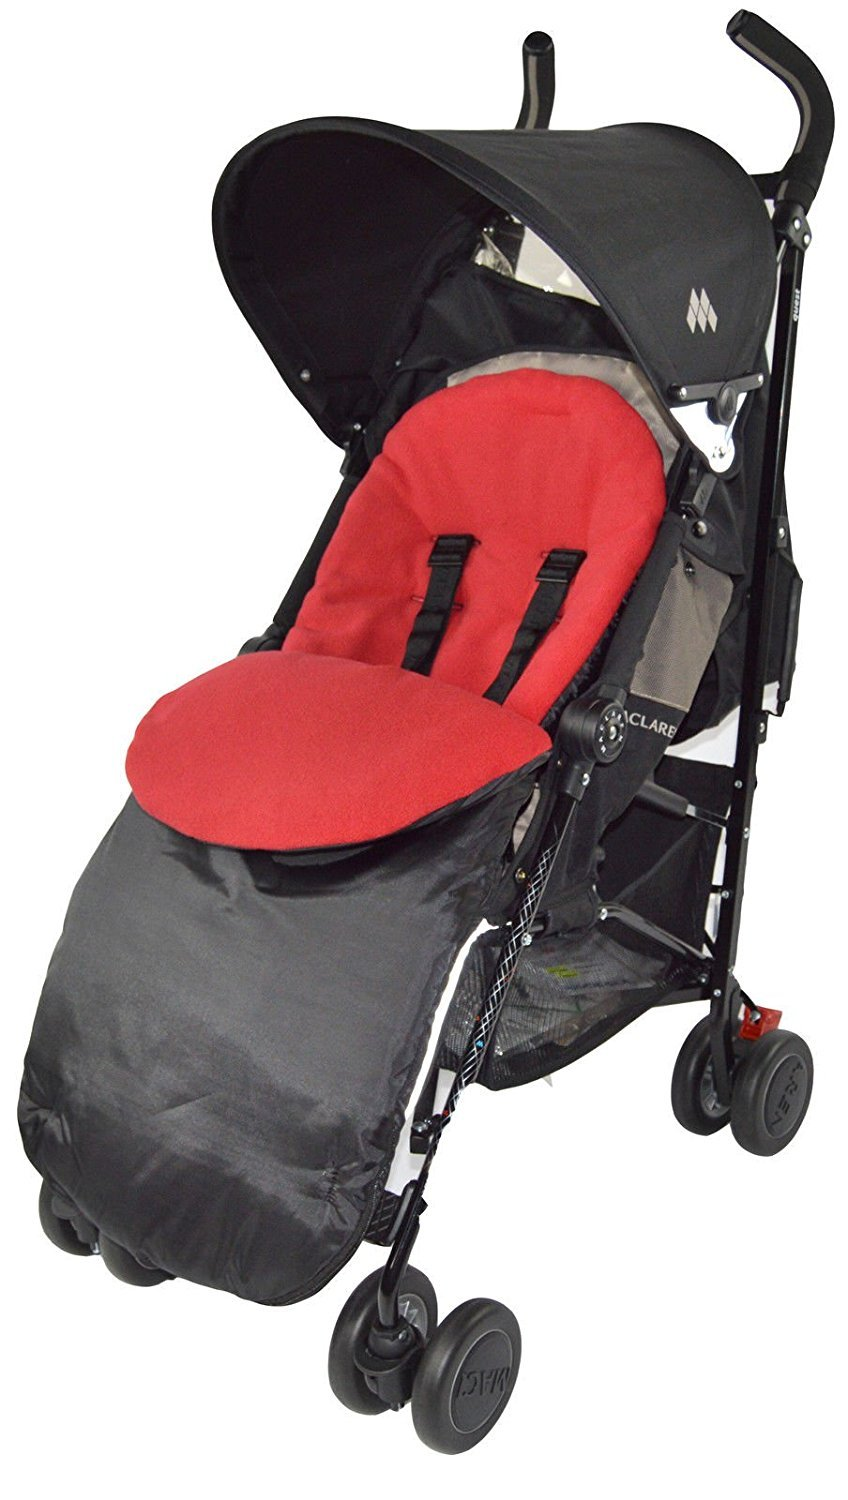 Chancelière/Cosy orteils Compatible avec Maclaren Techno XT/Quest/XLR/Volo Rouge For-Your-Little-One